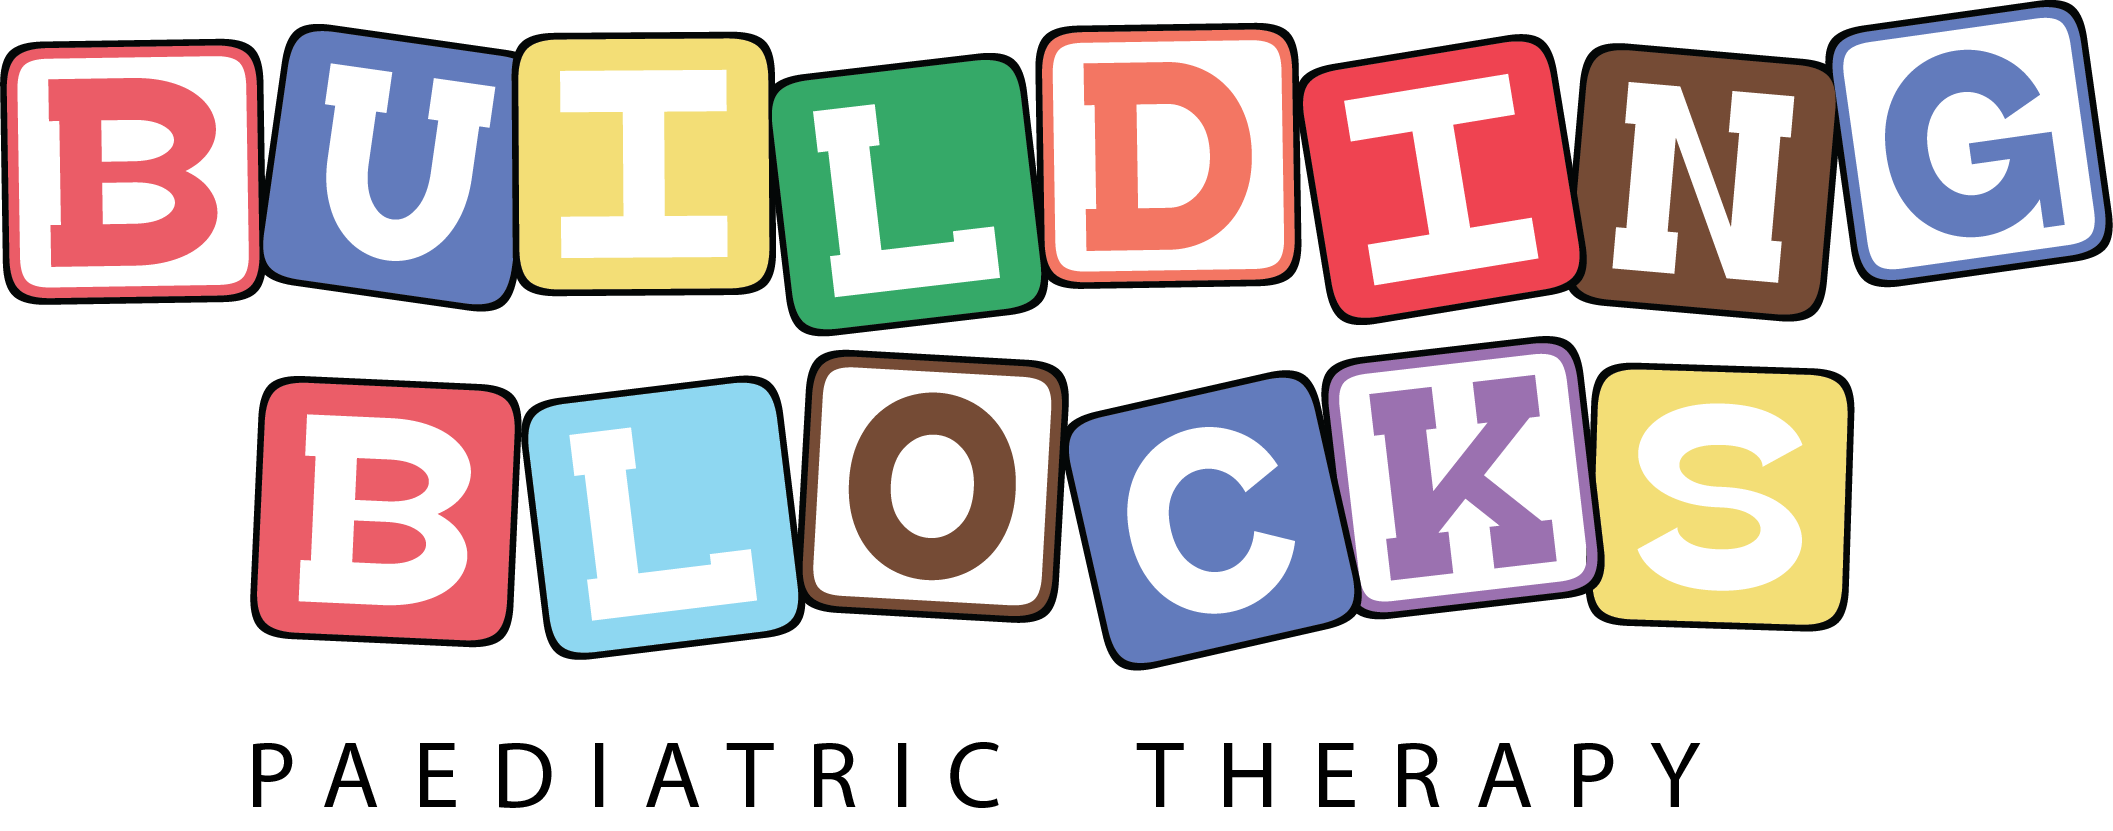 Toddler clipart building block. Paediatric occupational therapy in